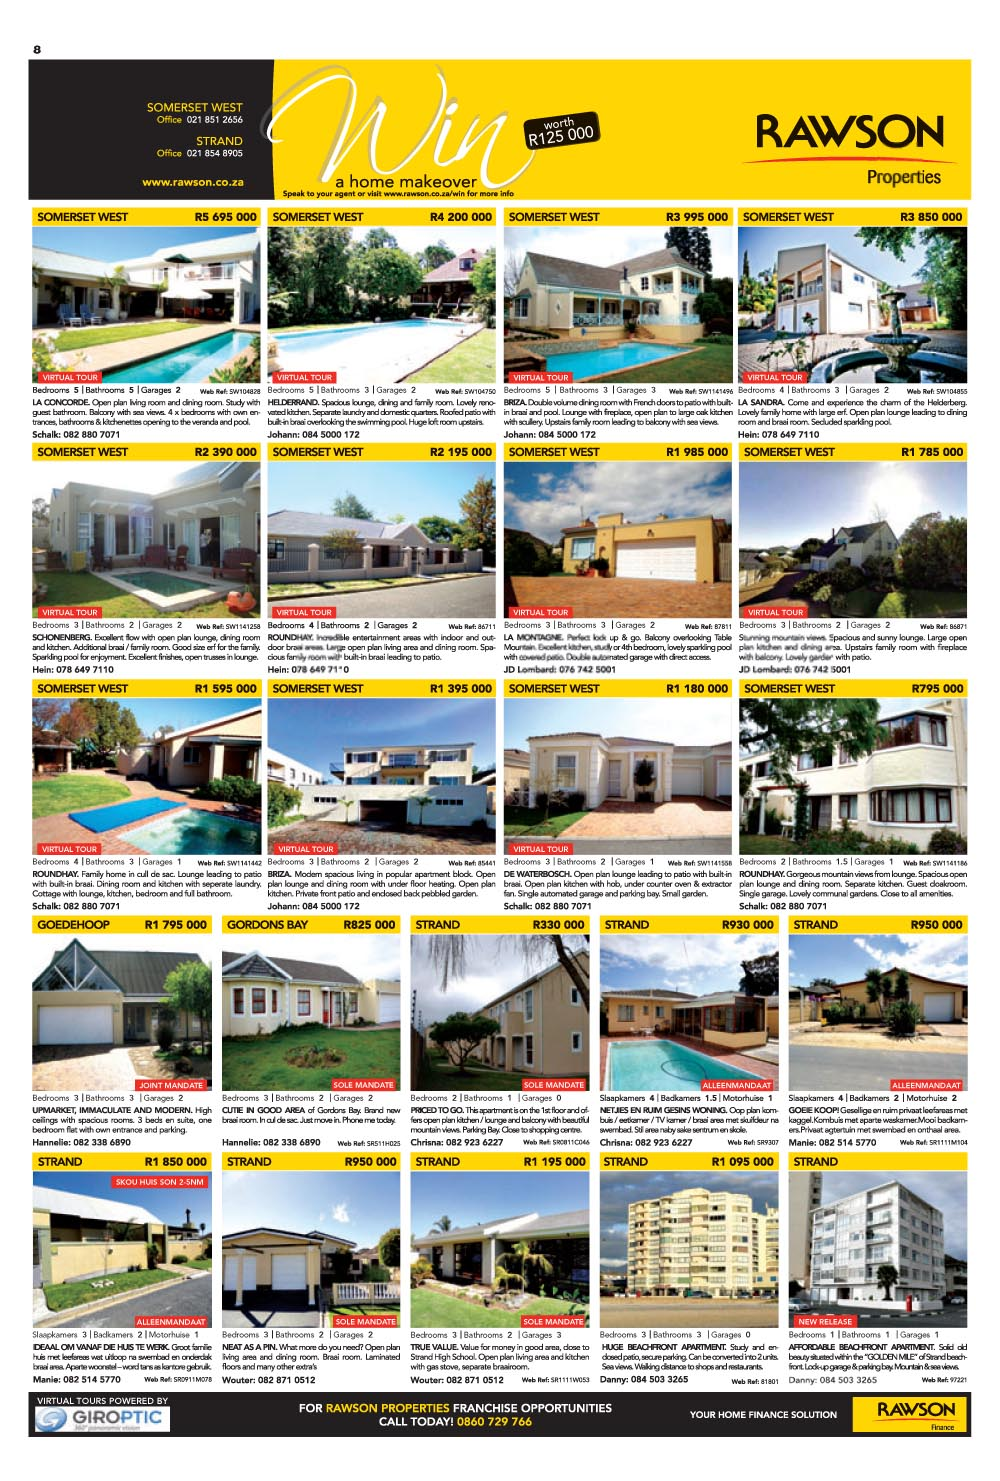 You are browsing images from the article: Property Selection -  January 18th 2012